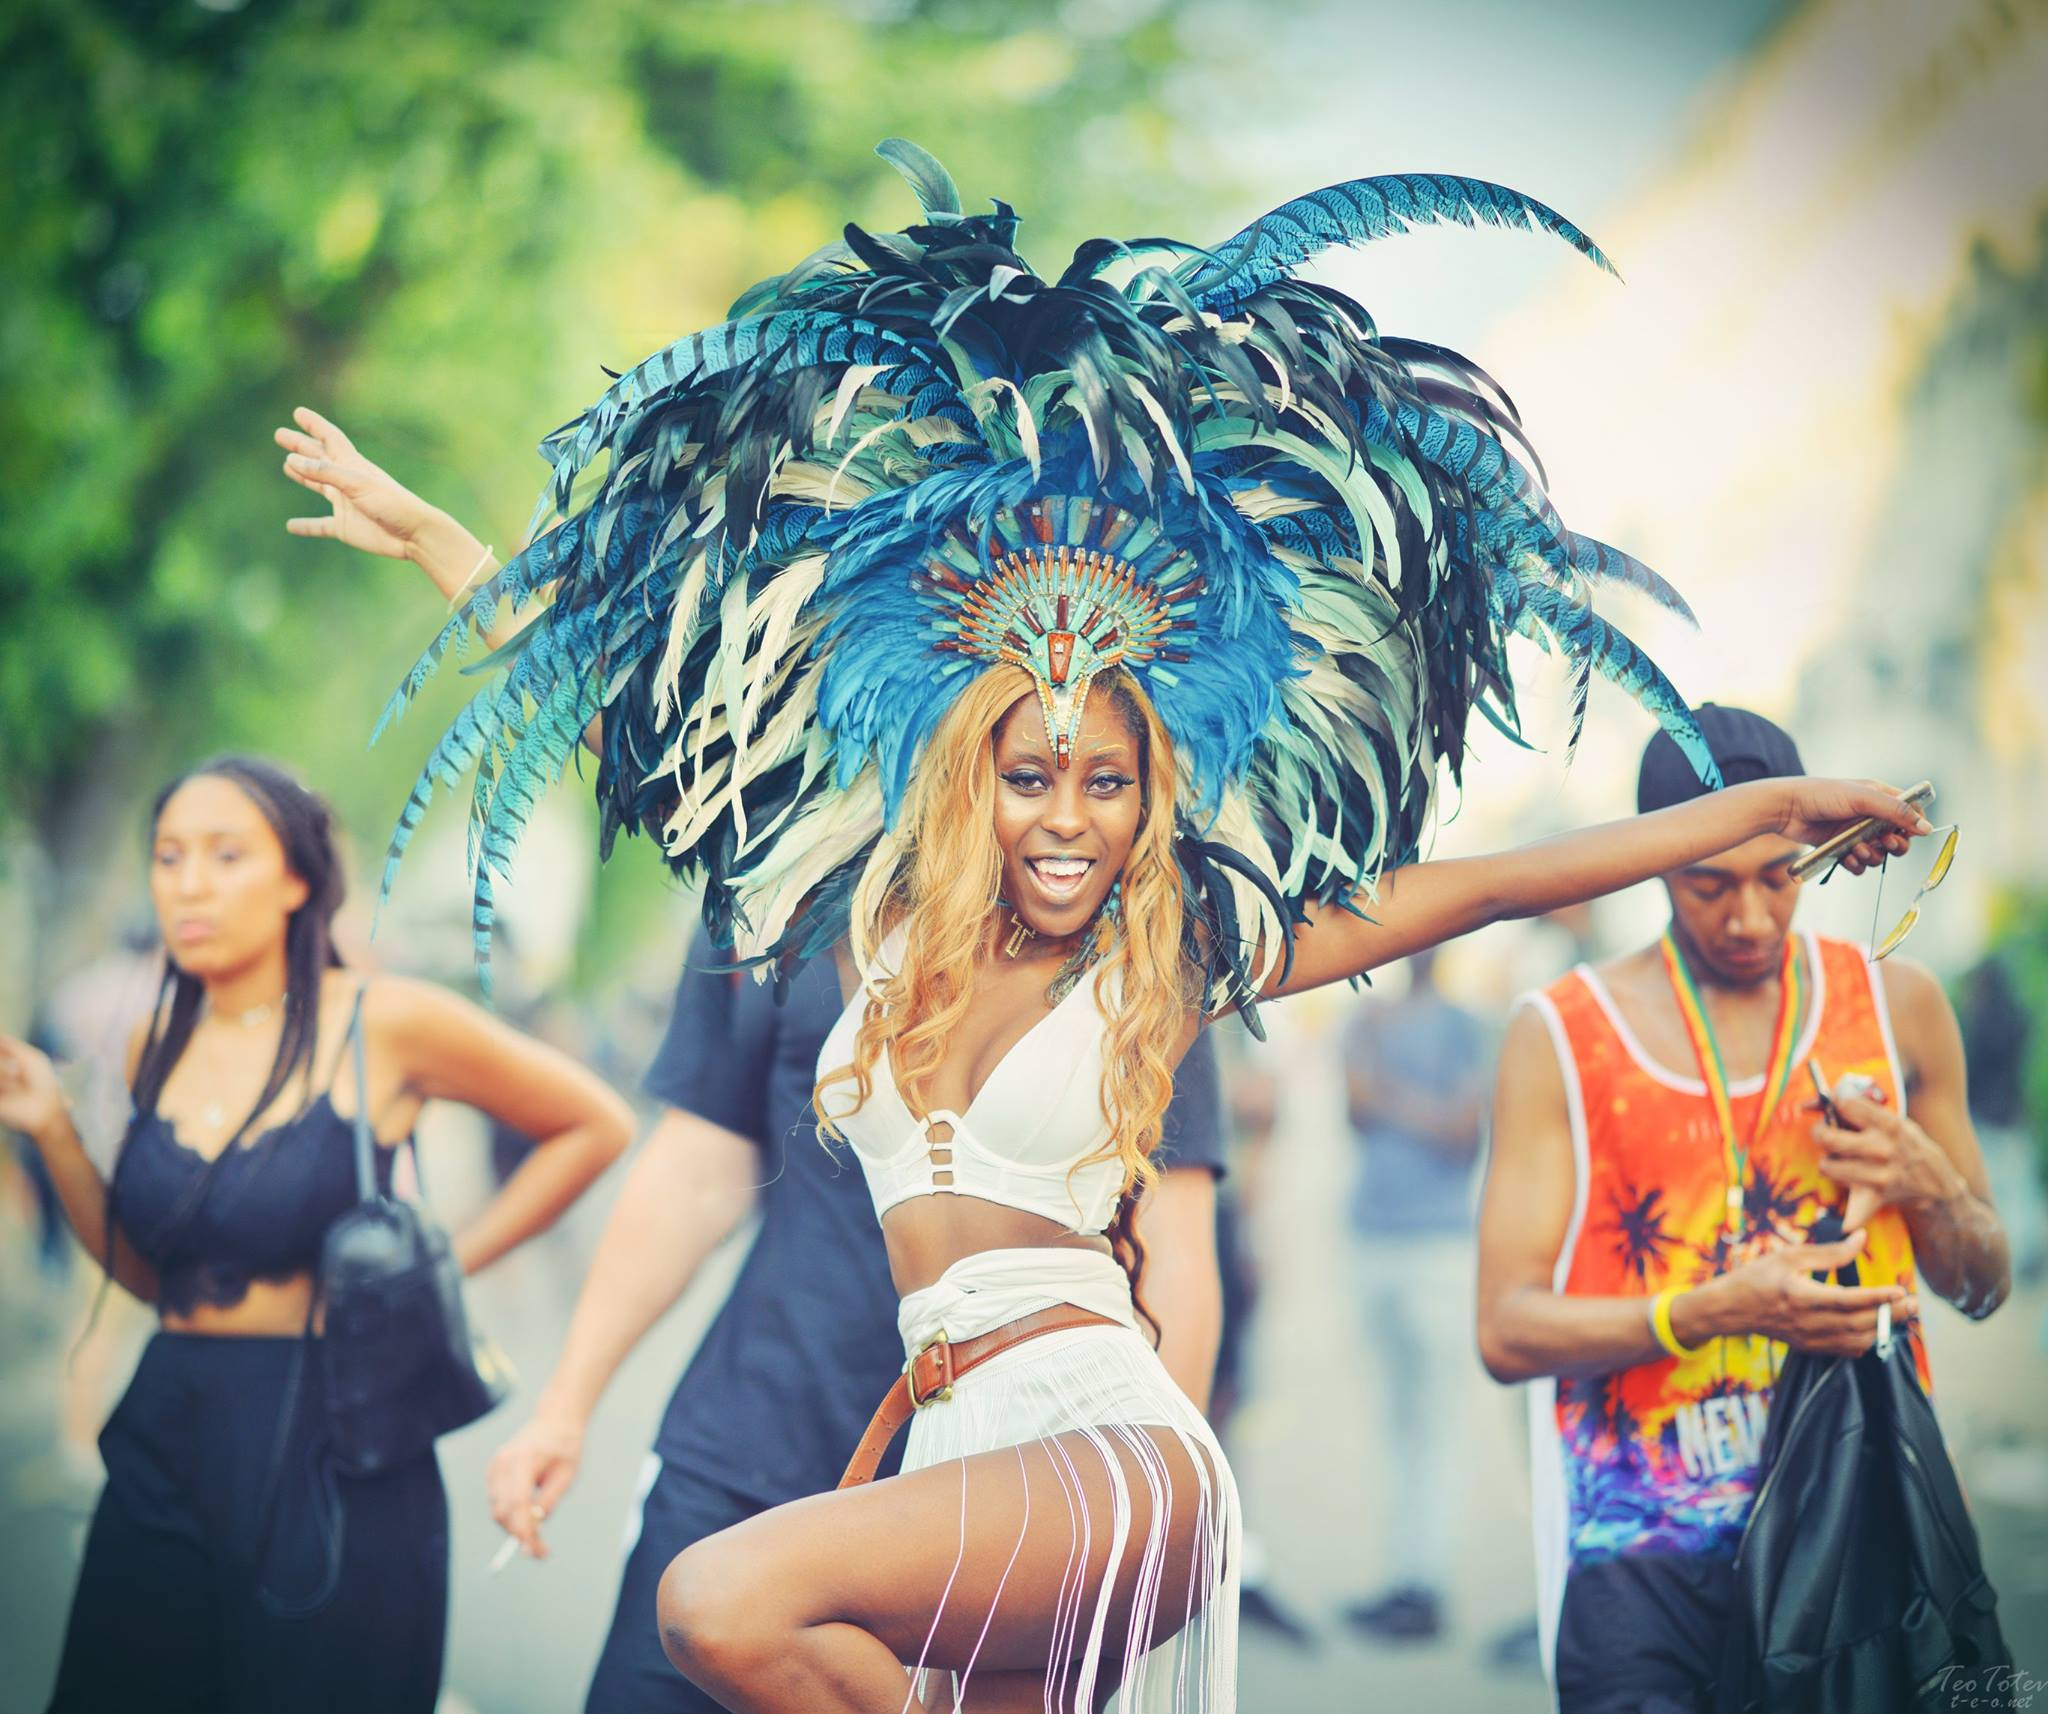 Dancer with Feathers at Notting Hill Gate Festival